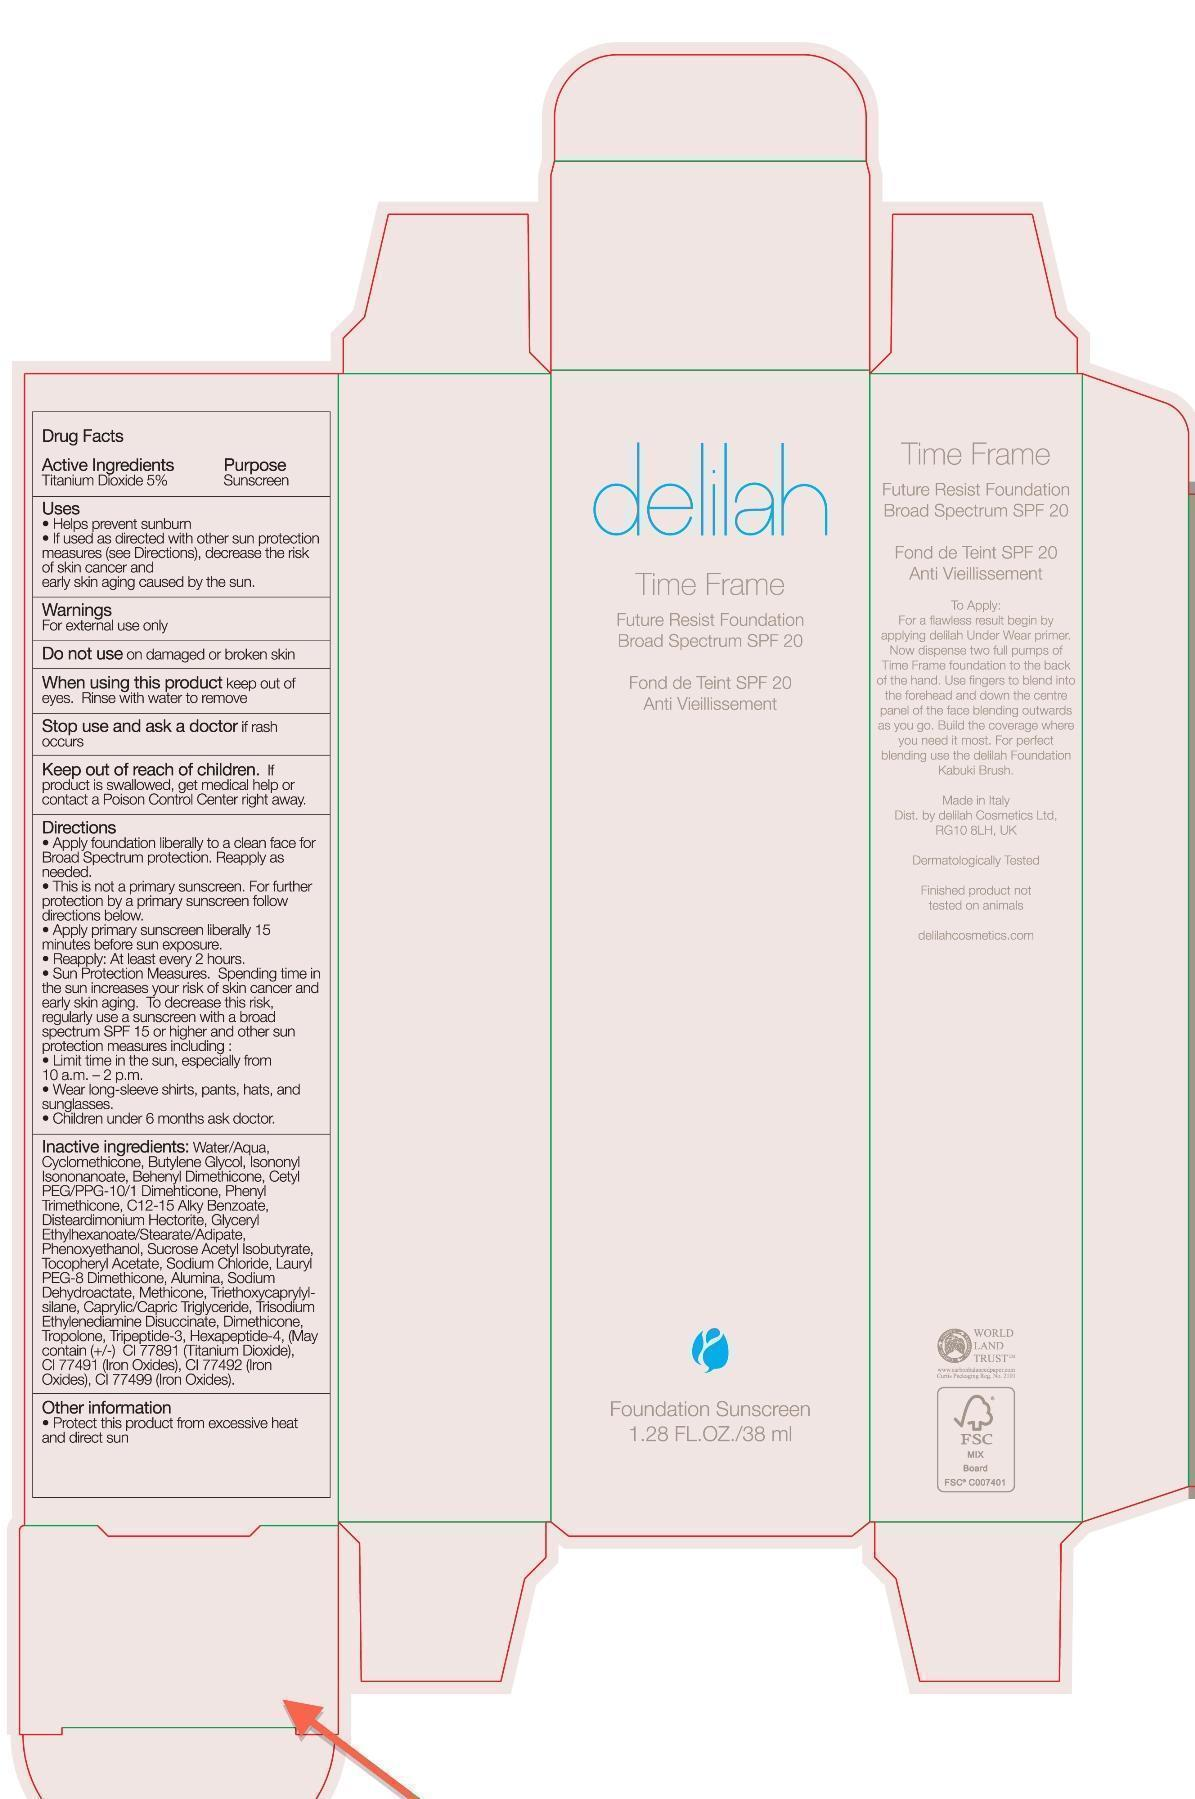 Time Frame Future Resist Foundation Broad Spectrum Spf 20 Delilah Cosmetics while Breastfeeding